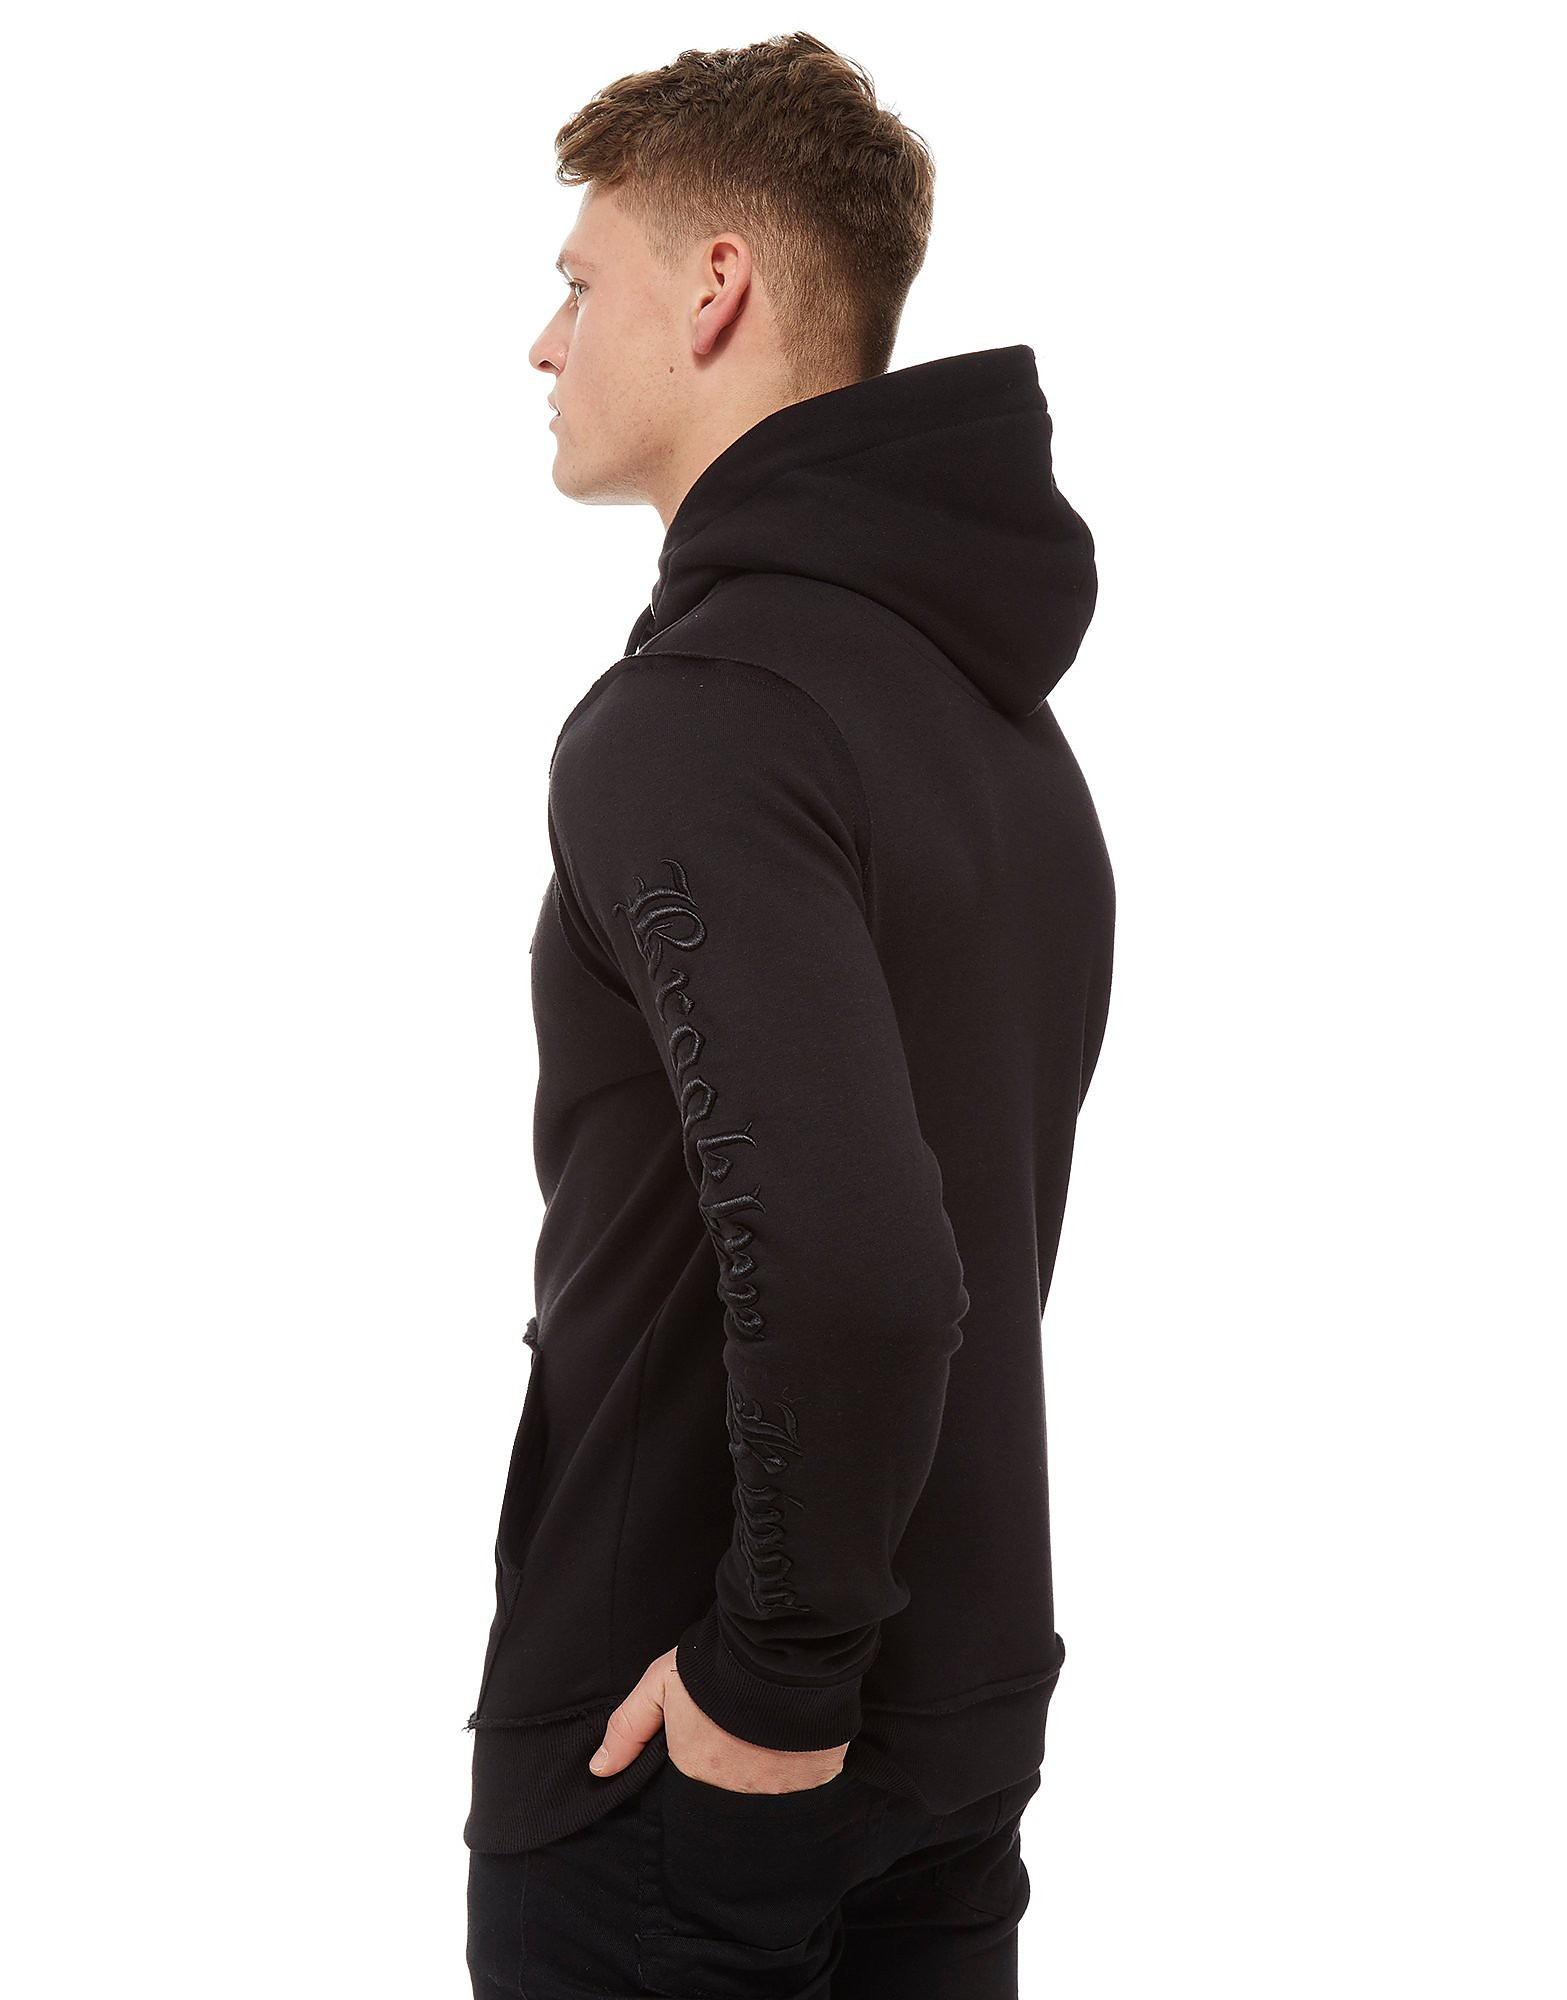 Supply & Demand Observe 1/4 Zip Hoodie